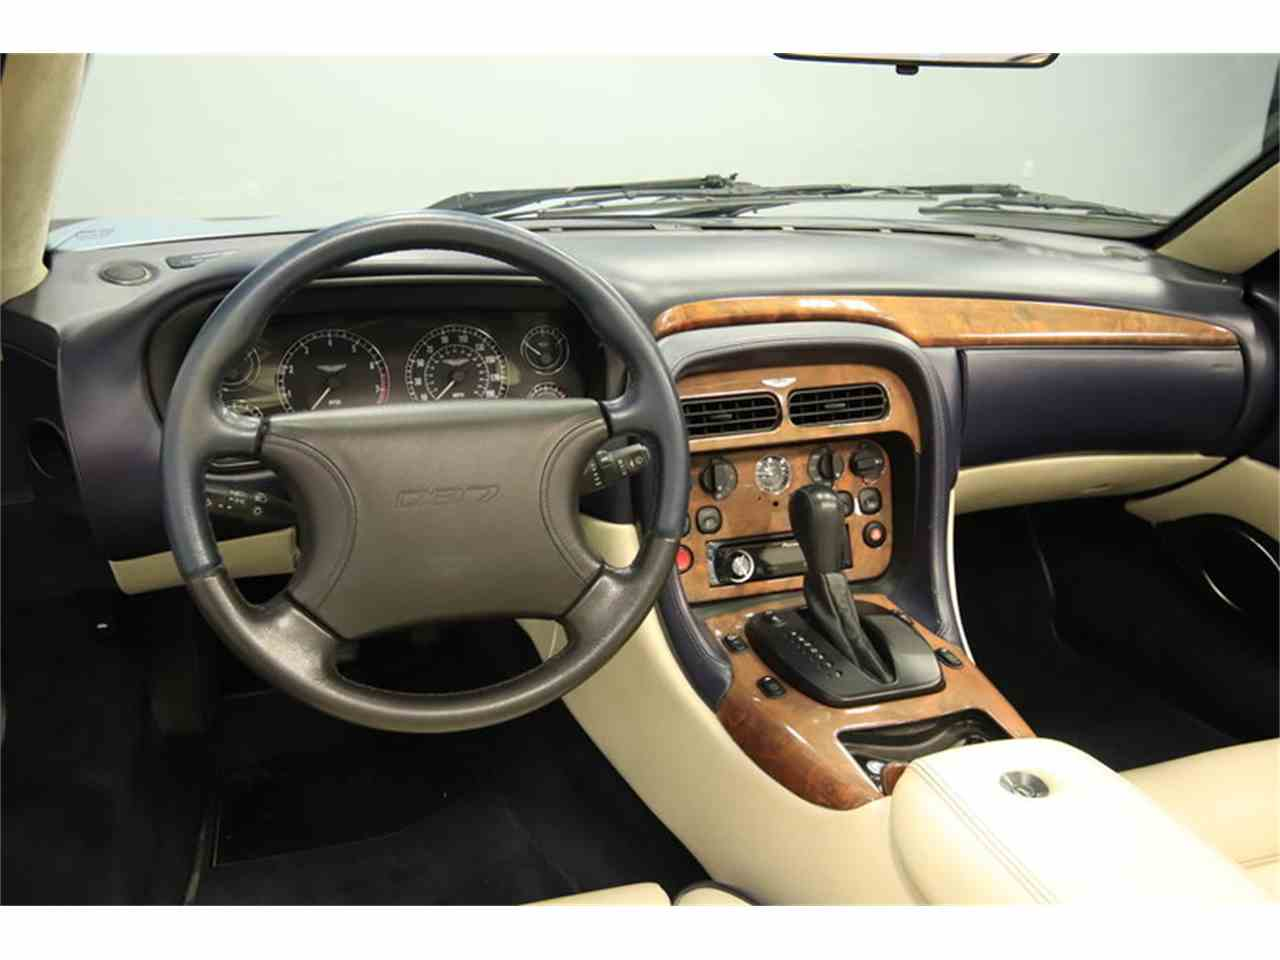 Large Picture of '00 DB7 Vantage Volante located in Arizona Offered by Streetside Classics - Phoenix - M73B